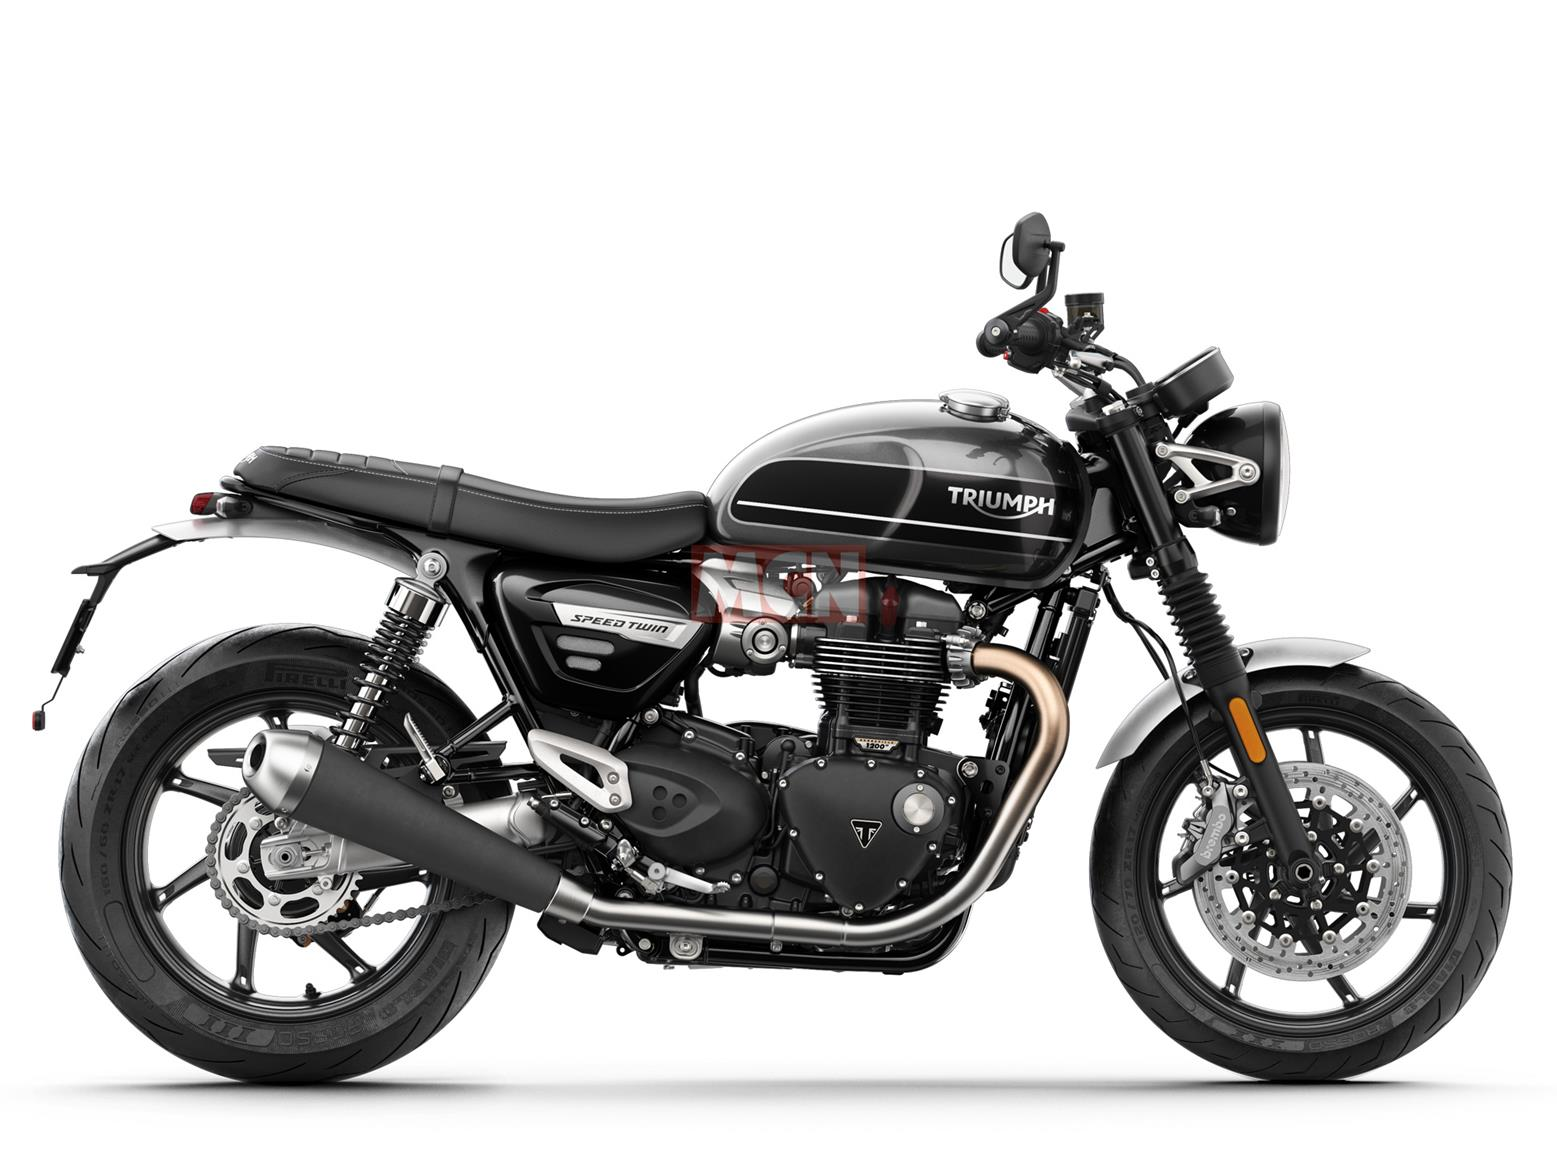 A side-on view of the Triumph Speed Twin